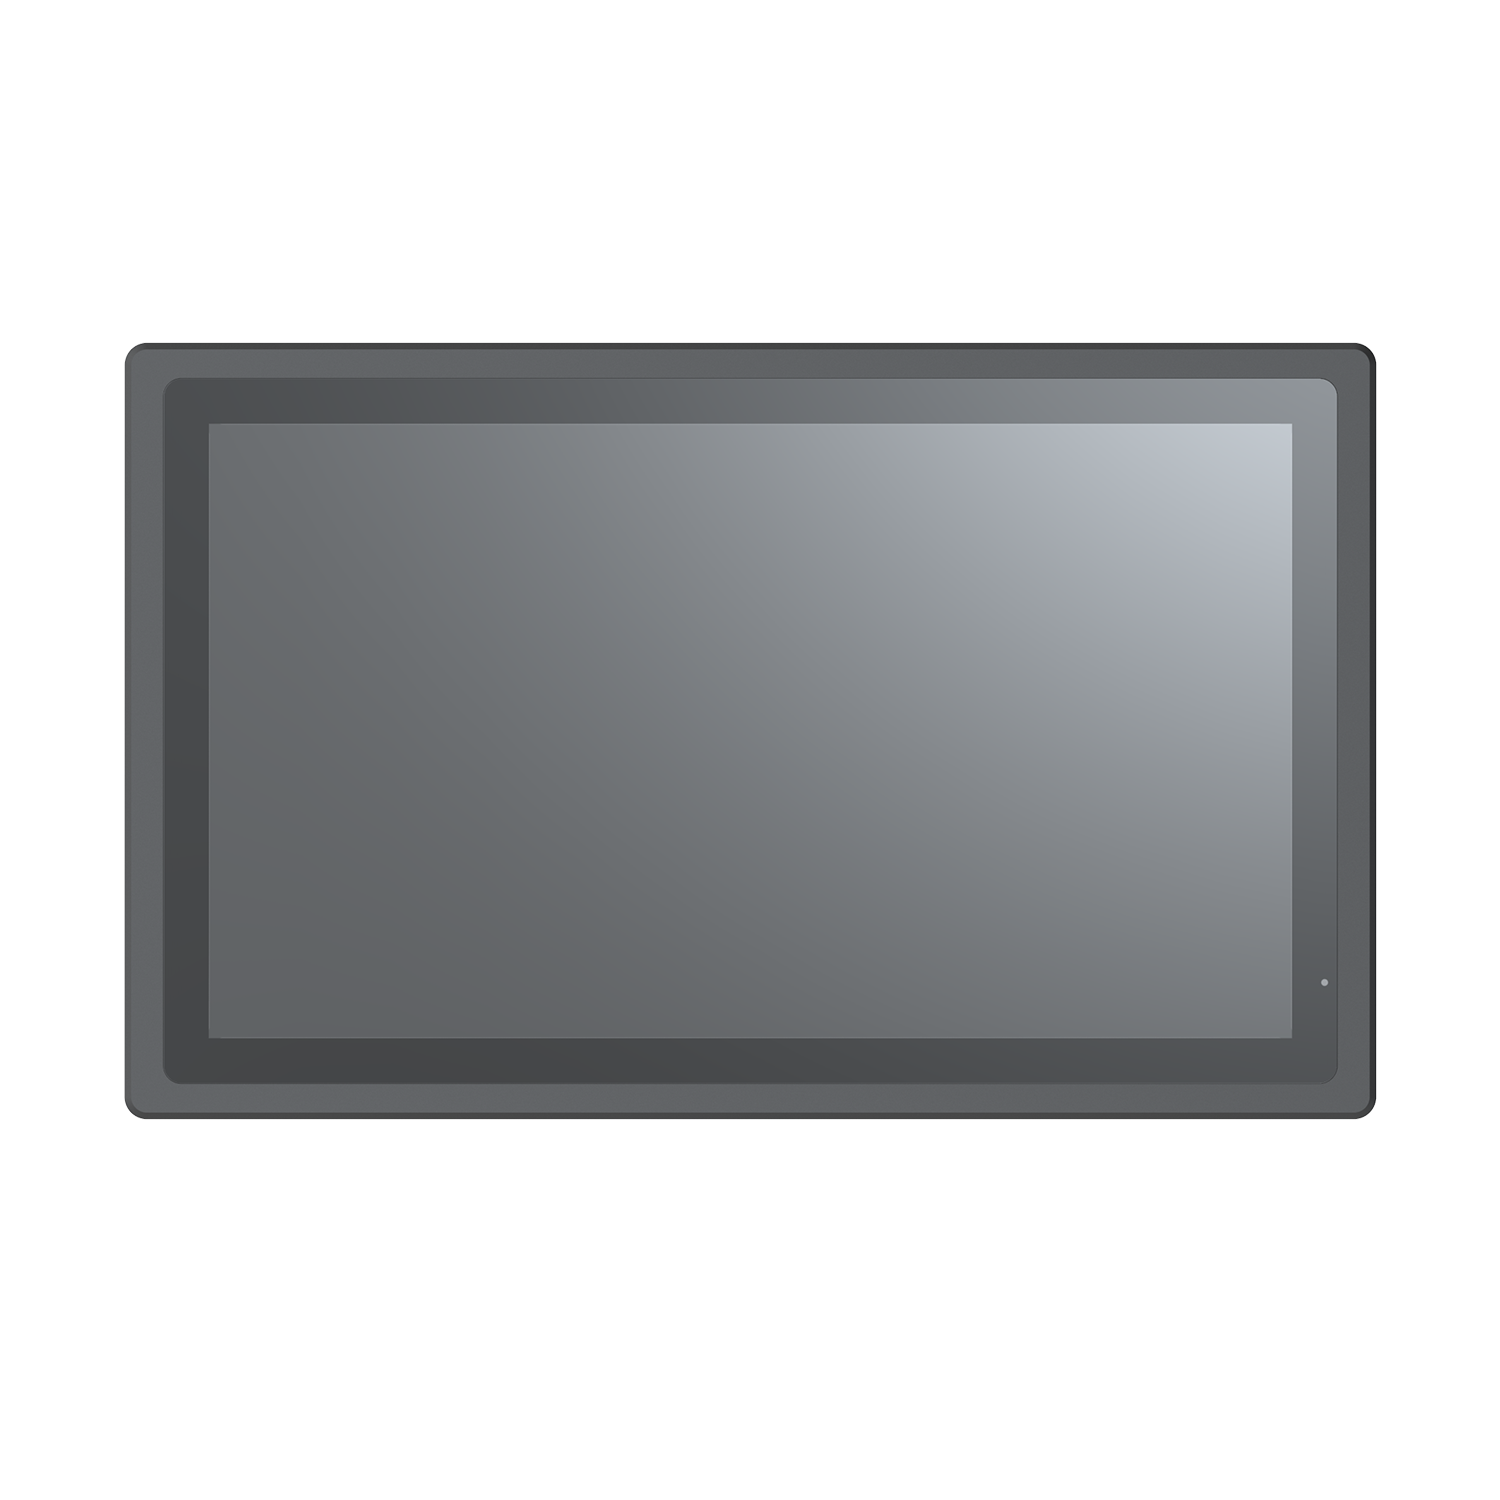 21,5 inch i3 touch screen panel pc | Lilliput PC-2150